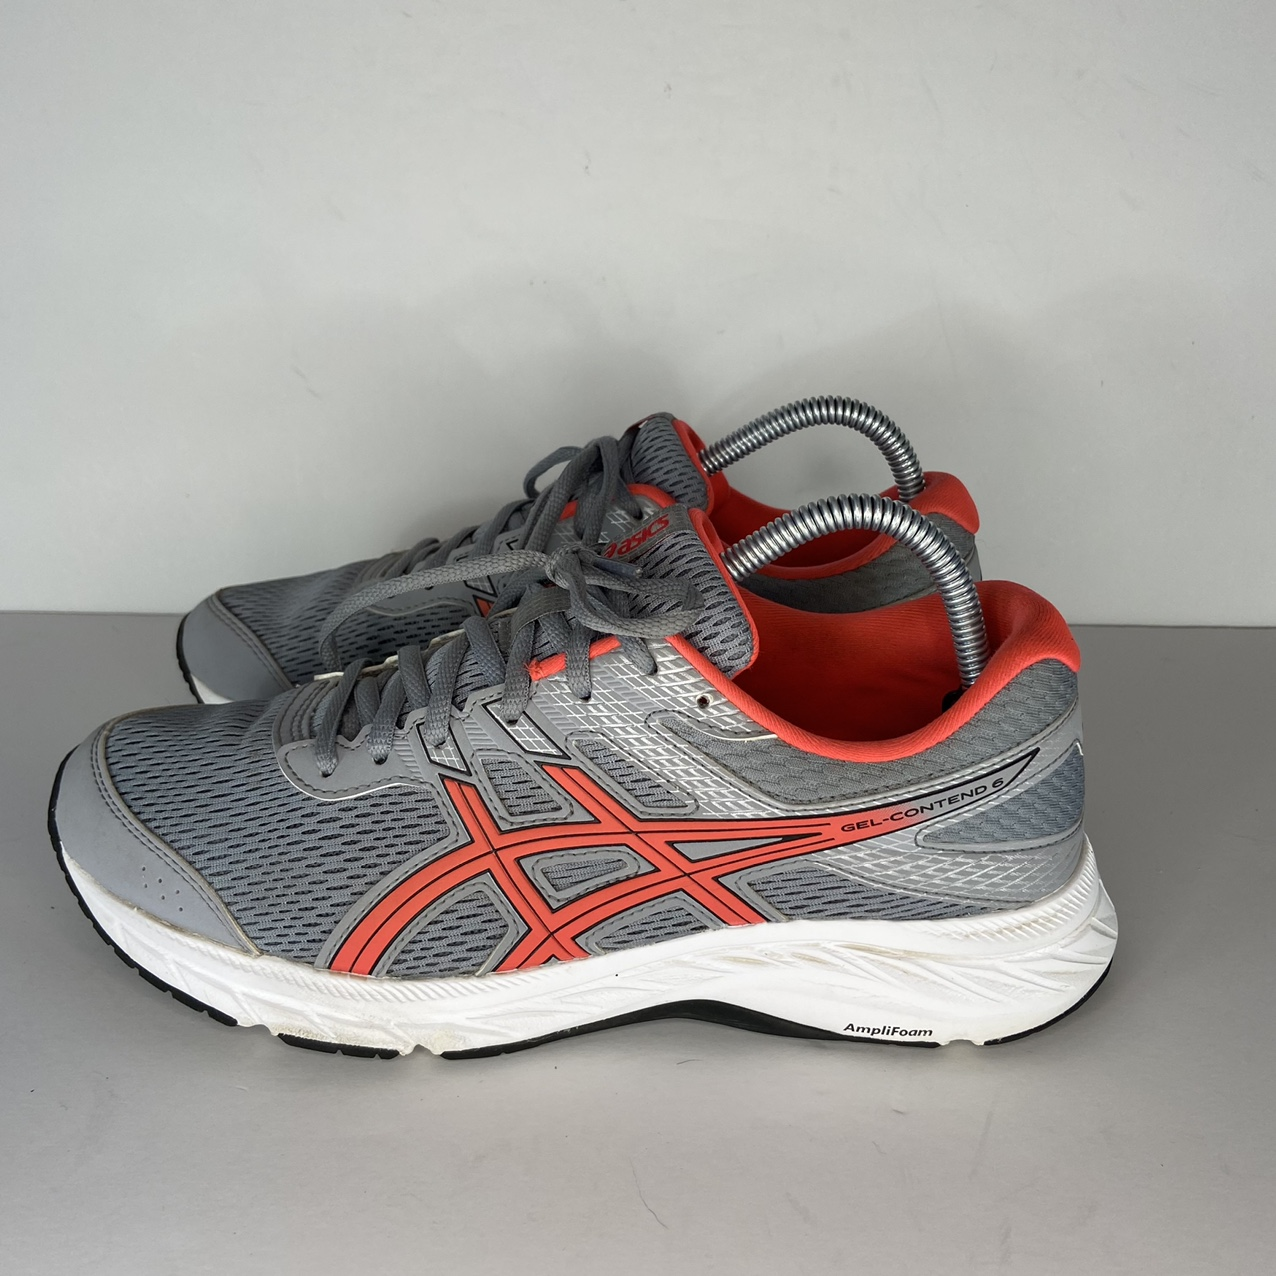 Product Image 1 - ASICS gel contend 6 sneakers.